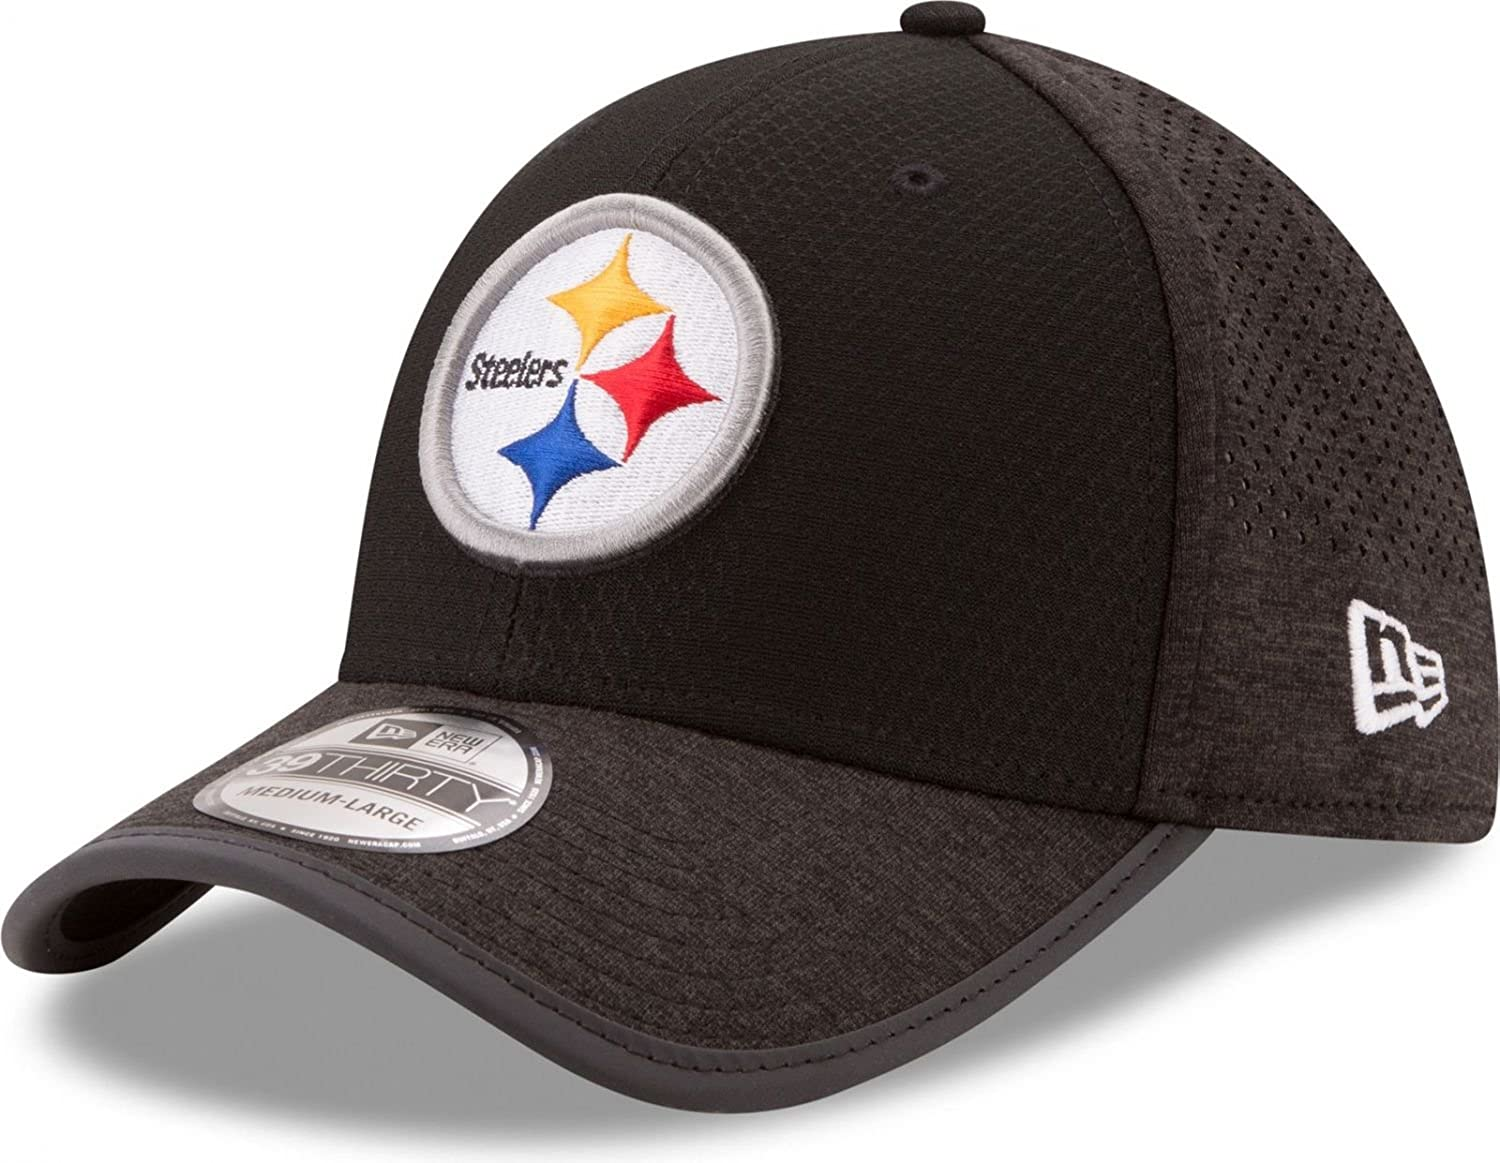 New Era Men's Pittsburgh Steelers 3930 Onfield Training Hat Black/Reflective Silver Size